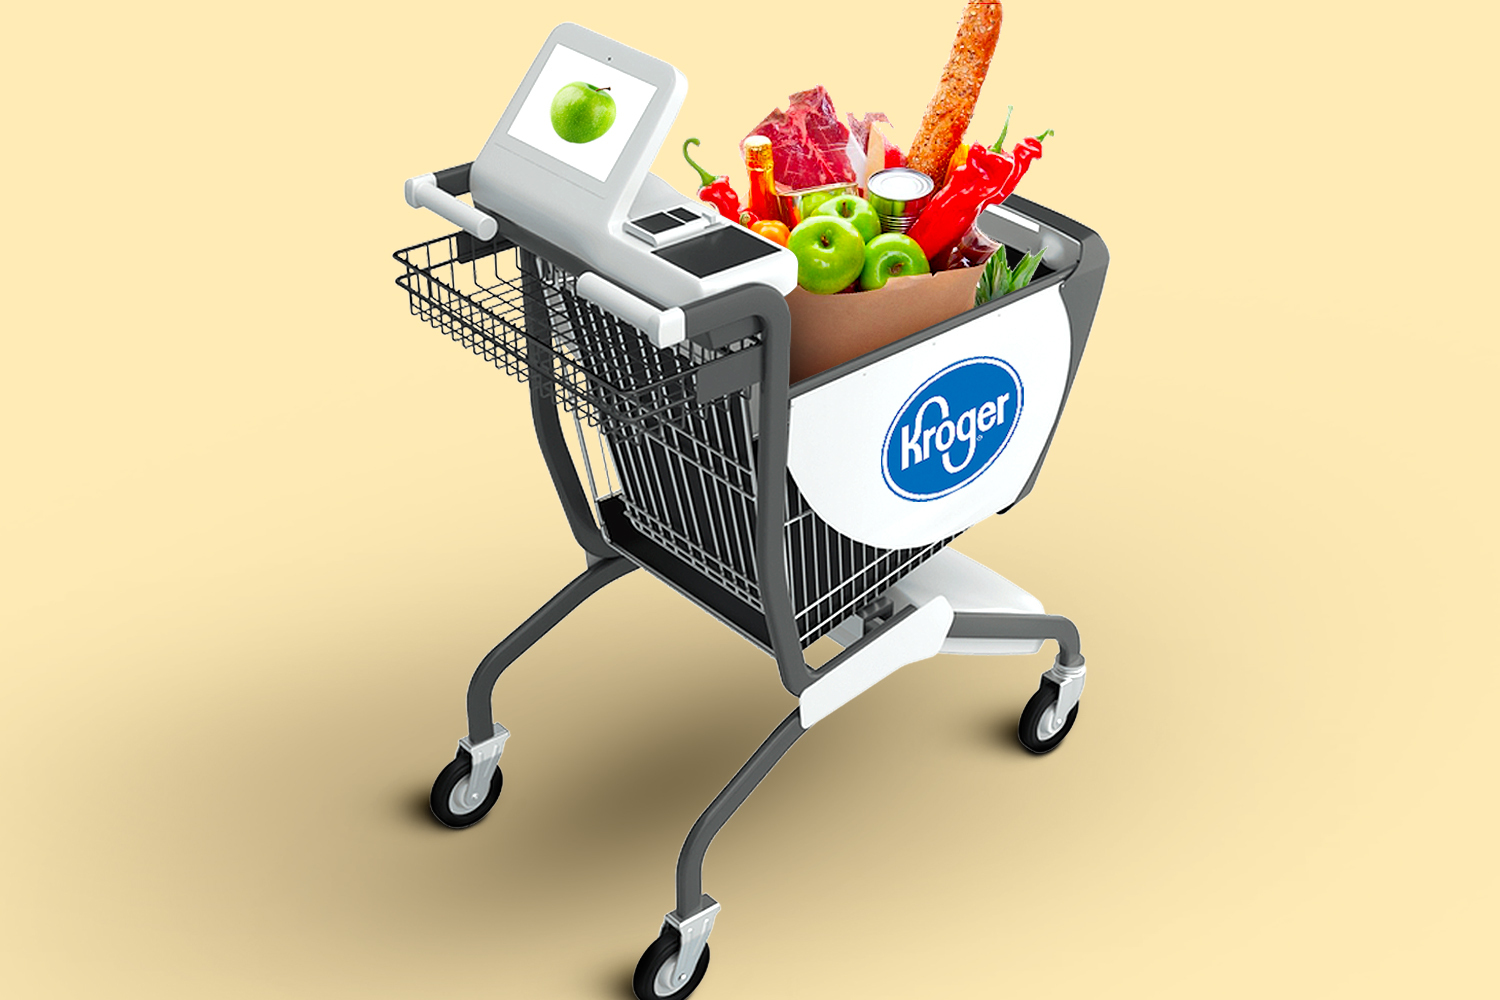 Kroger Partners With Caper for Smart Cart Pilot